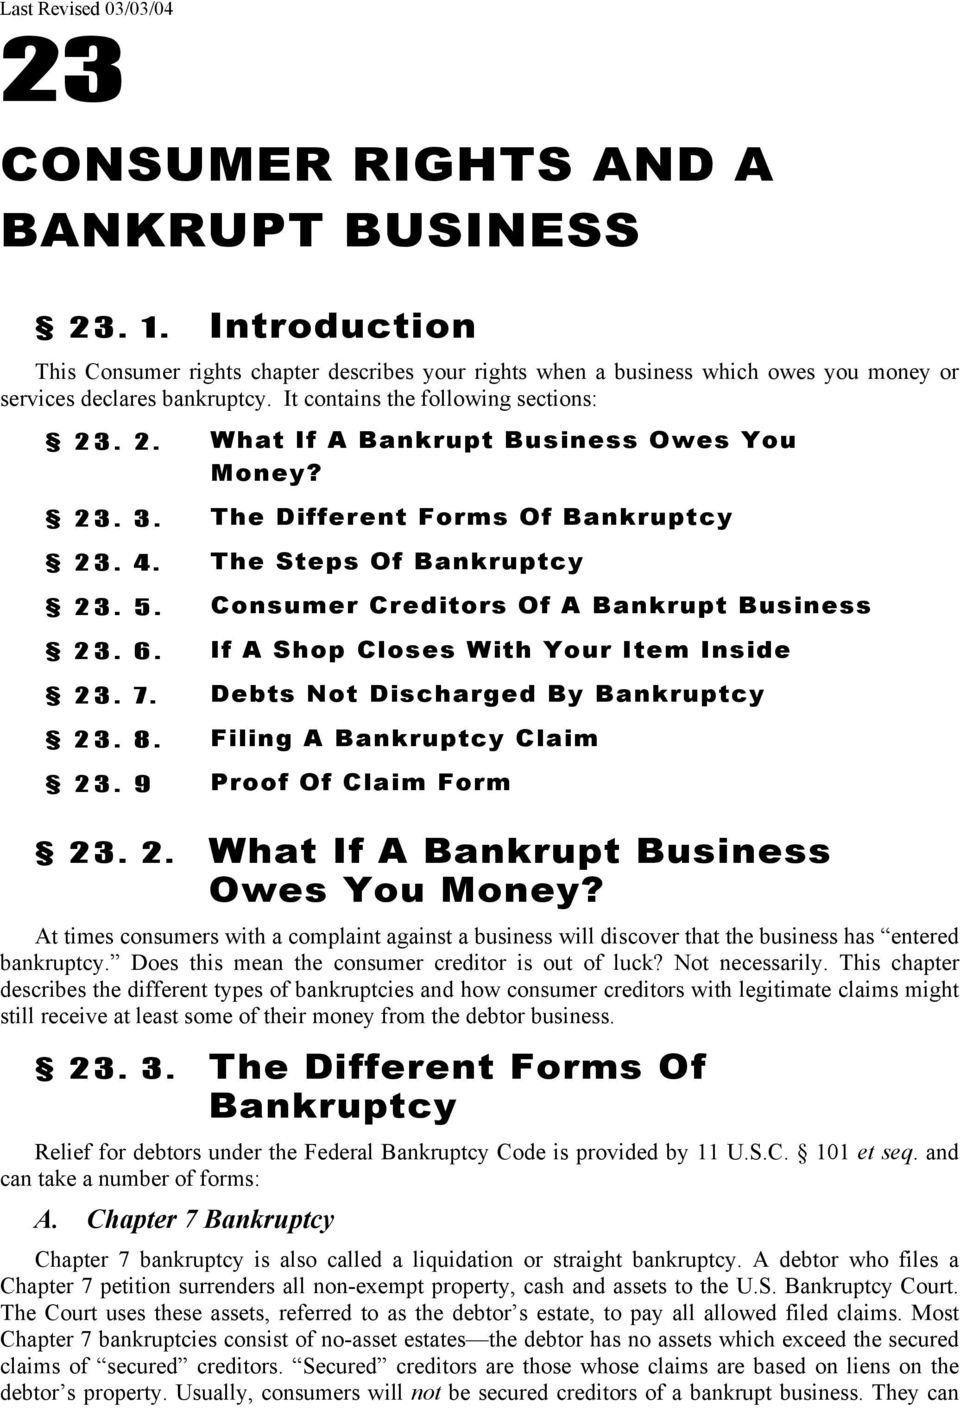 . 2. What If A Bankrupt Business Owes You Money? 23. 3. The Different Forms Of Bankruptcy 23. 4. The Steps Of Bankruptcy 23. 5. Consumer Creditors Of A Bankrupt Business 23. 6.